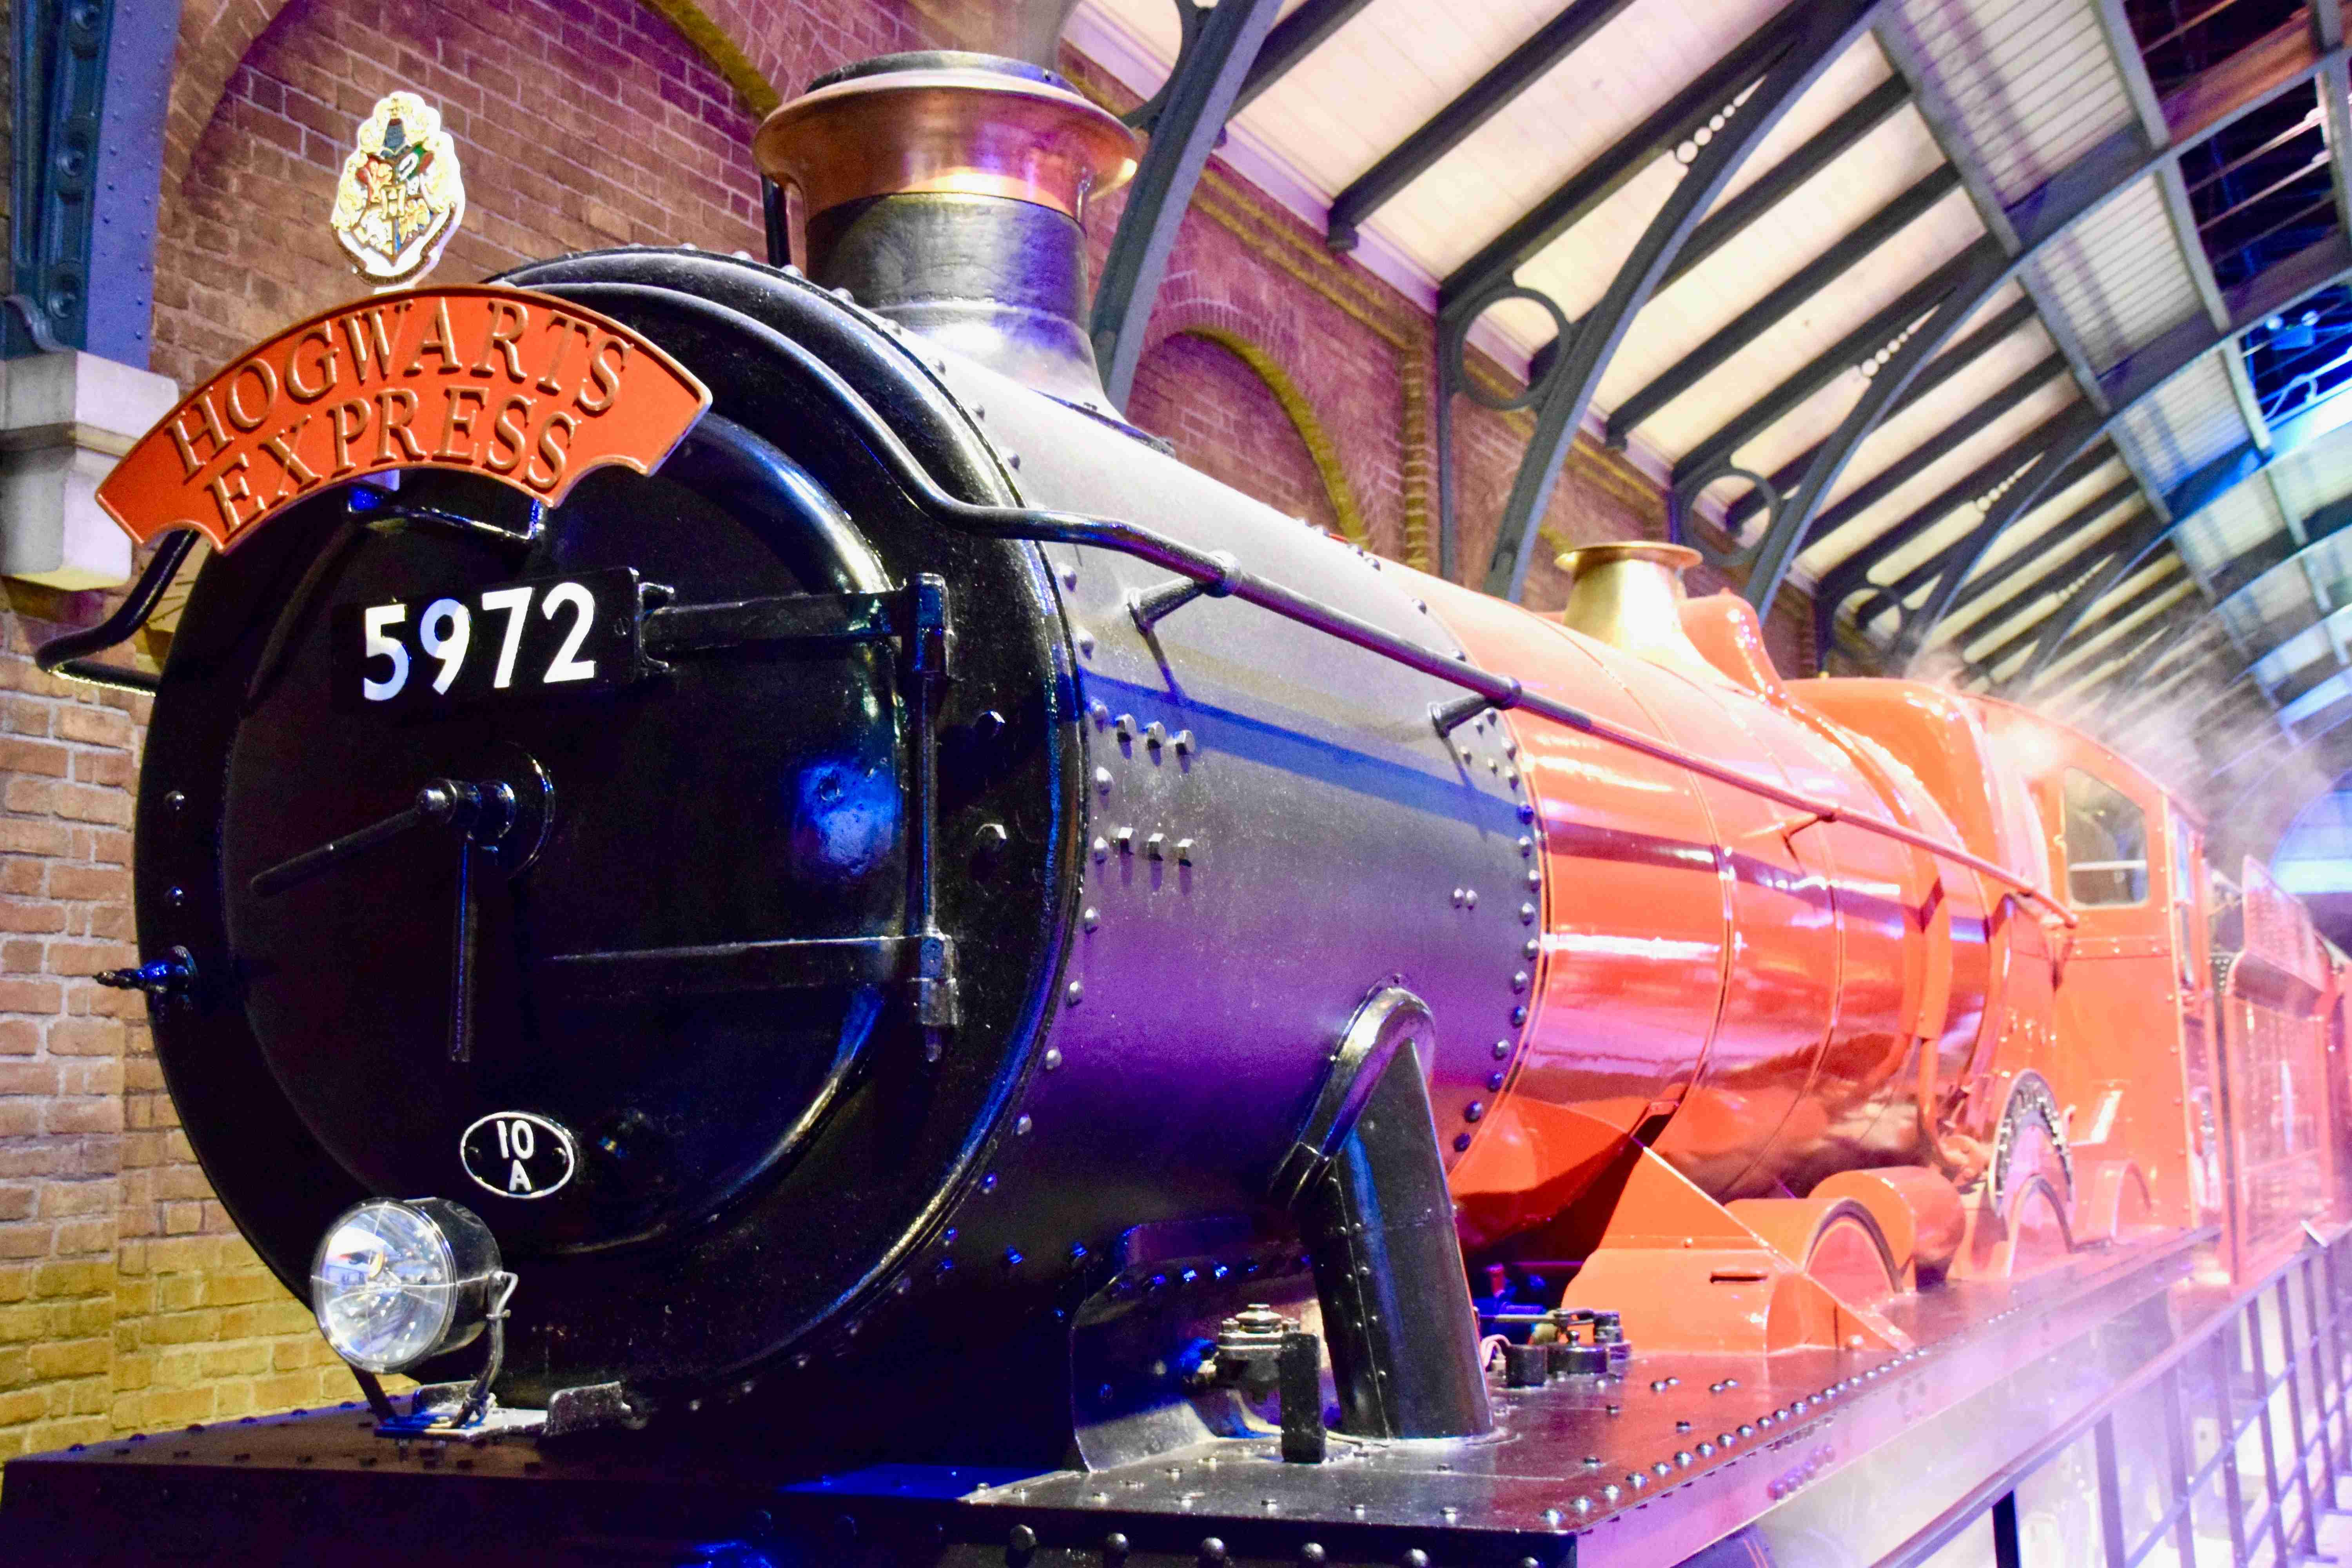 Hogwarts Express at Harry Potter Studios London